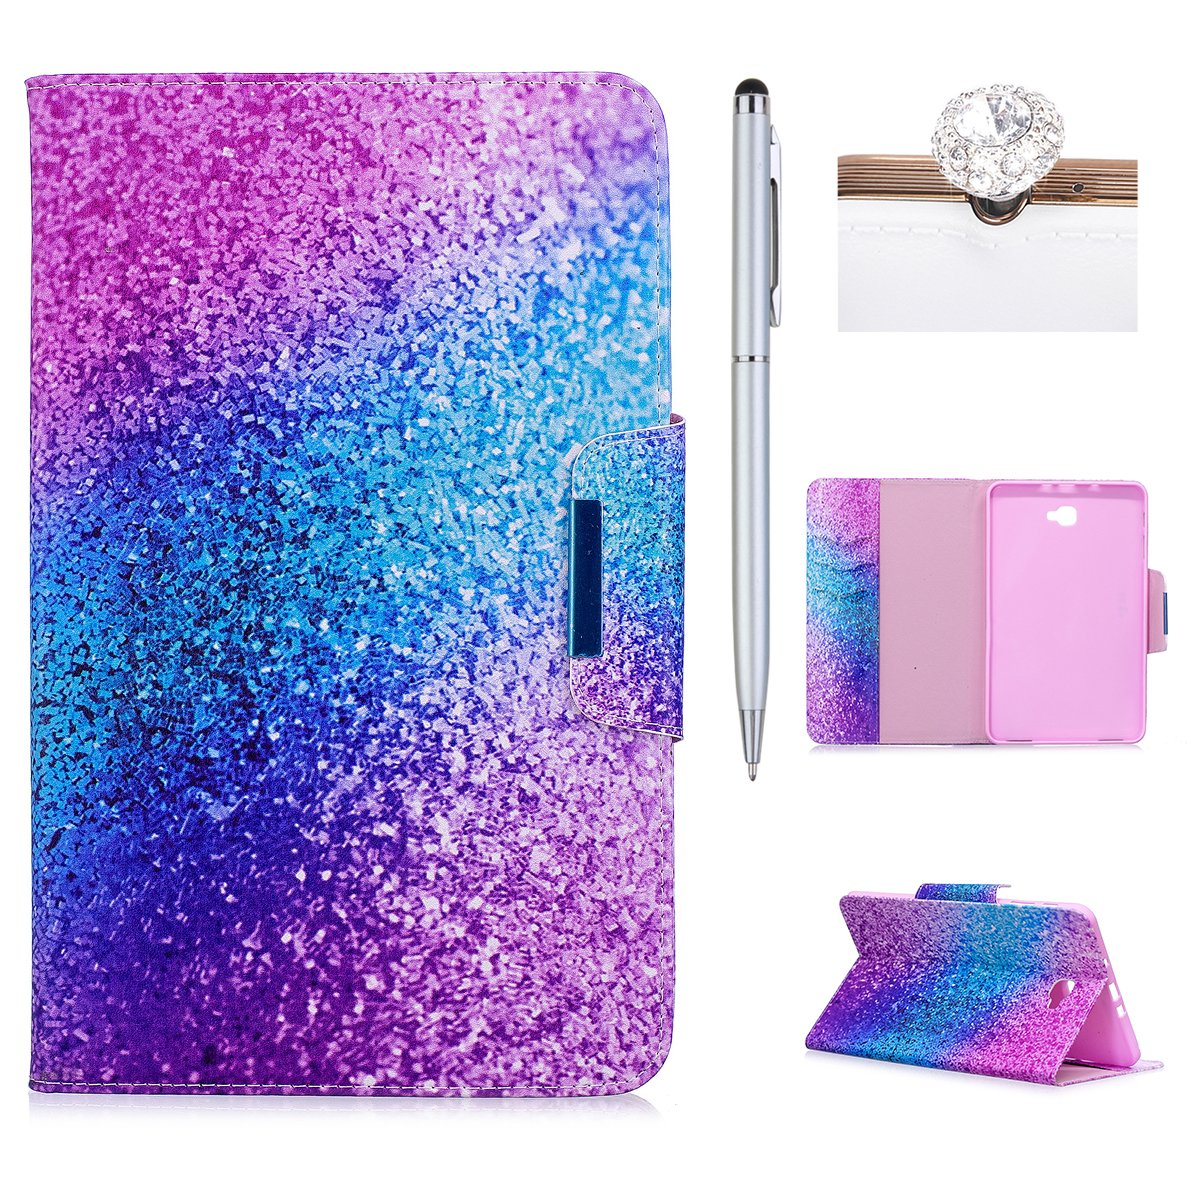 Galaxy Tab A 10.1'' Case, Galaxy Tab A 10.1 Marble Case,Felfy Premium Leather Galaxy Tab A 10.1'' Case Cover Wallet Flip/Magnetic Closure/Card Slots Kickstand Holster with Luxury Colorful Panting Marble Series Pattern Fold Smart Phone Shell Drop Protection